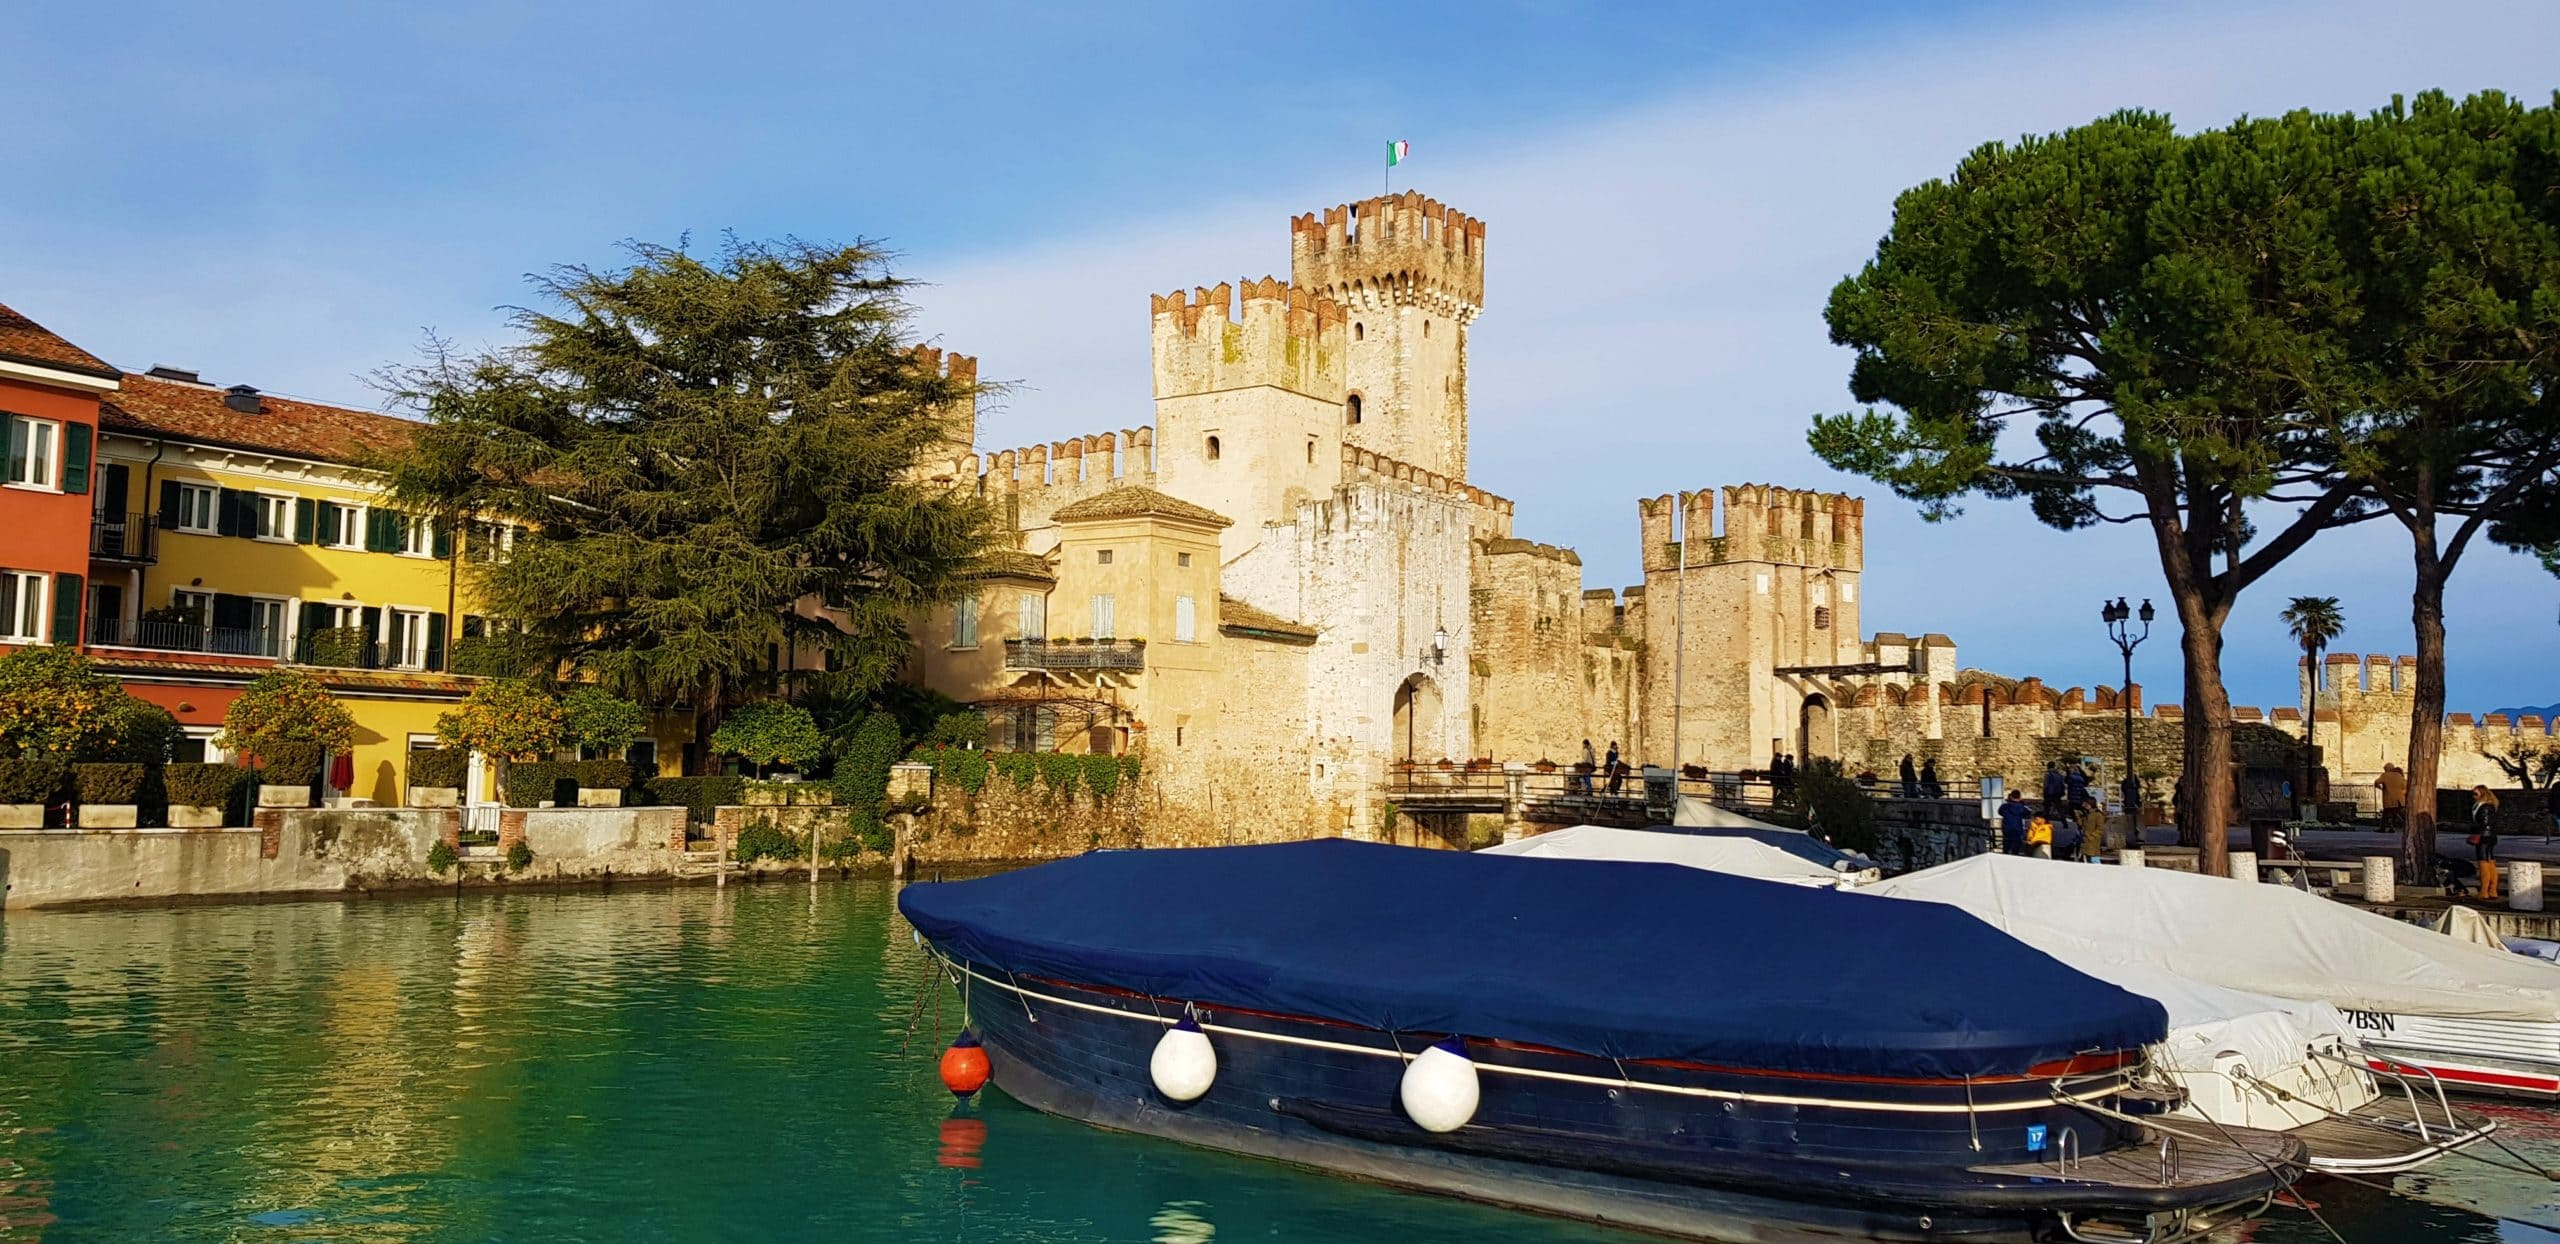 Italy Lake garde sirmione in winter castle